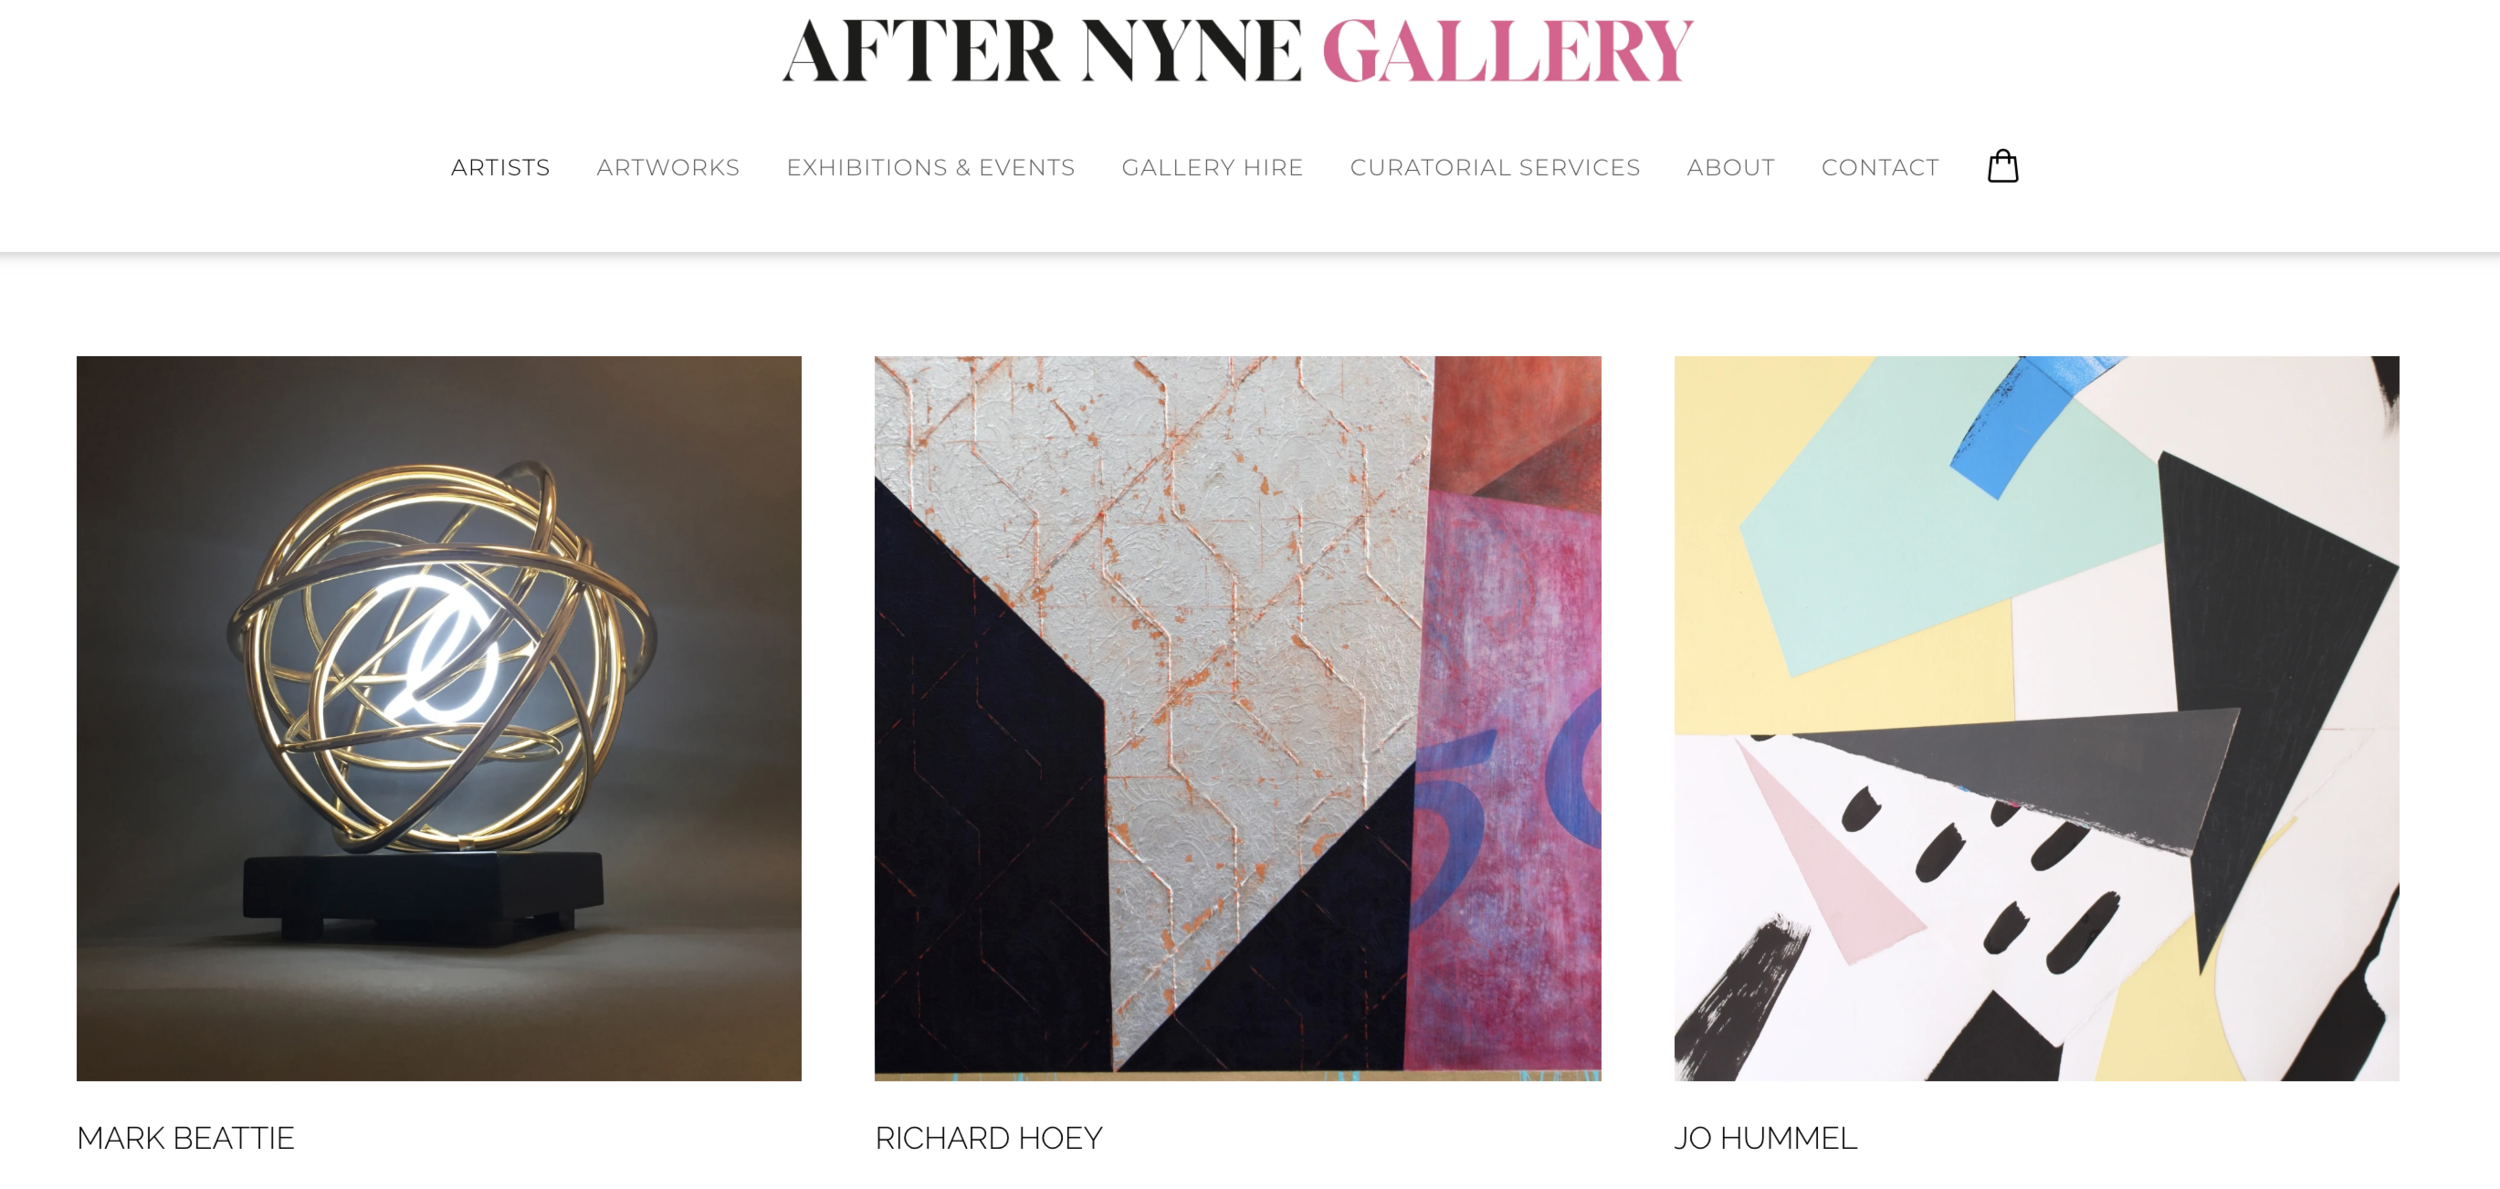 After Nyne Gallery